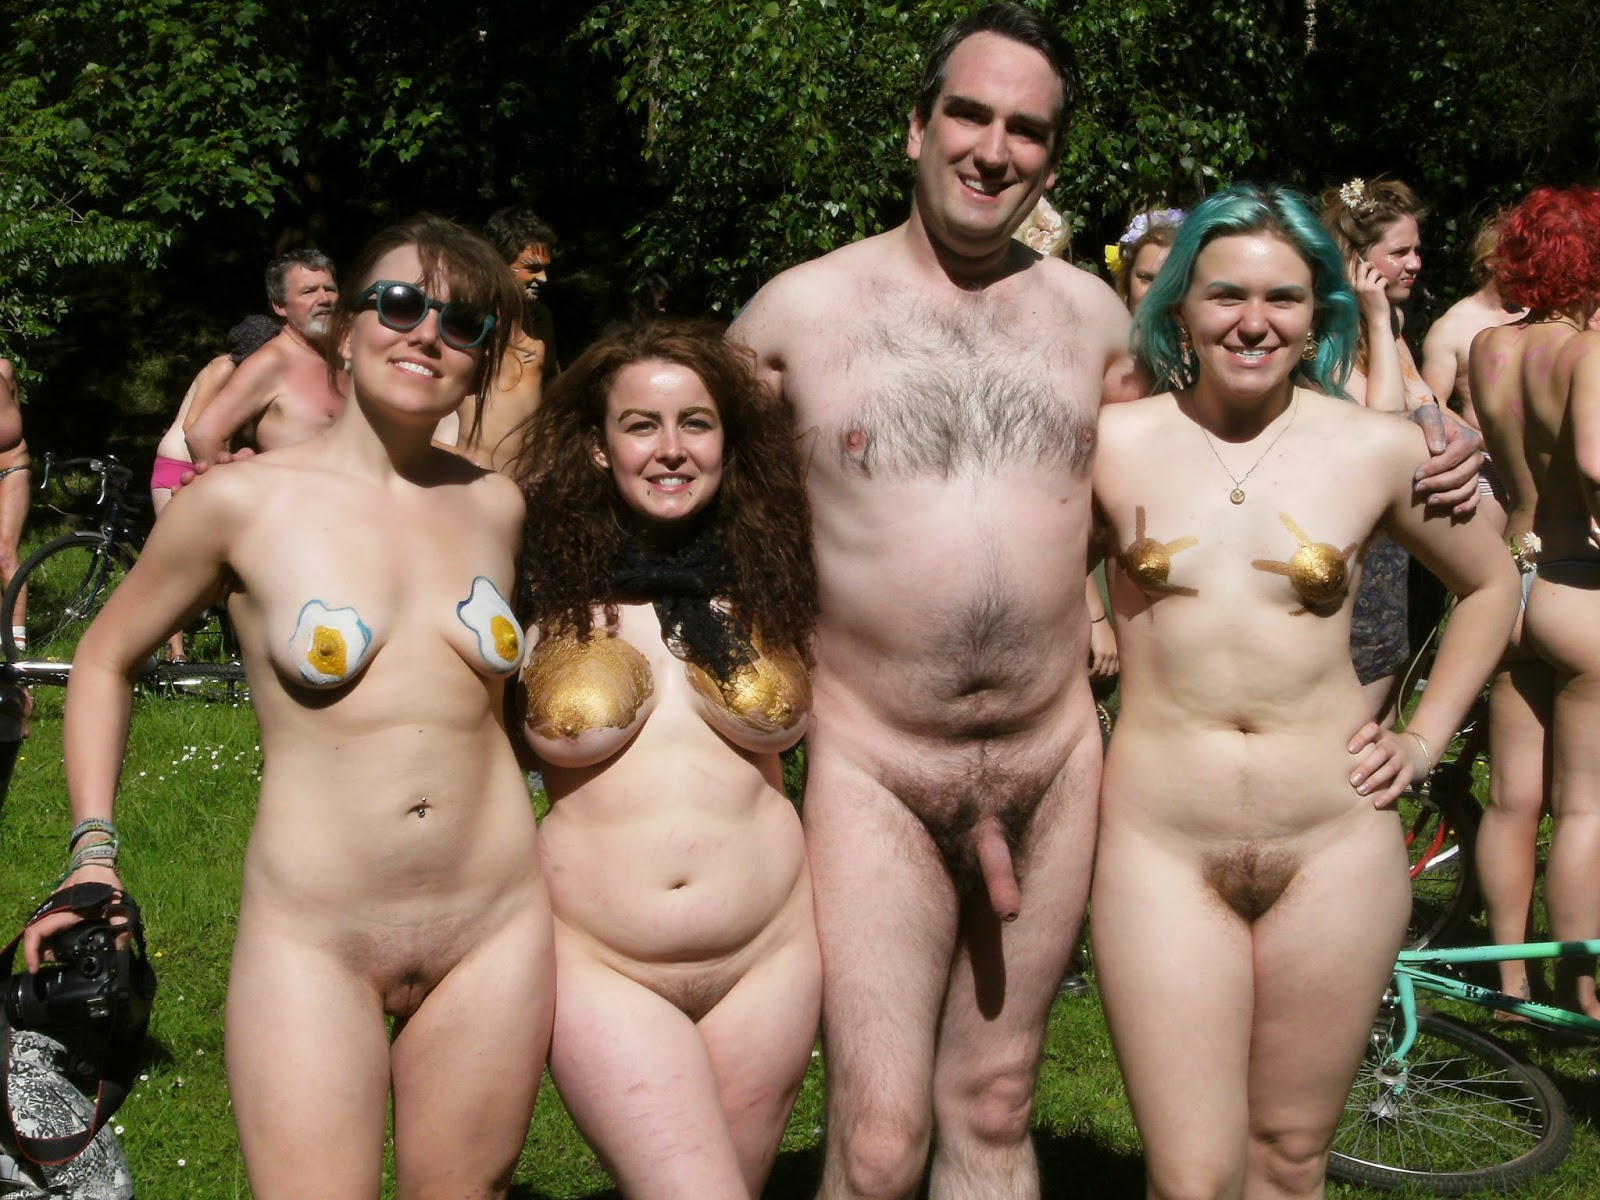 amateur naked family pics